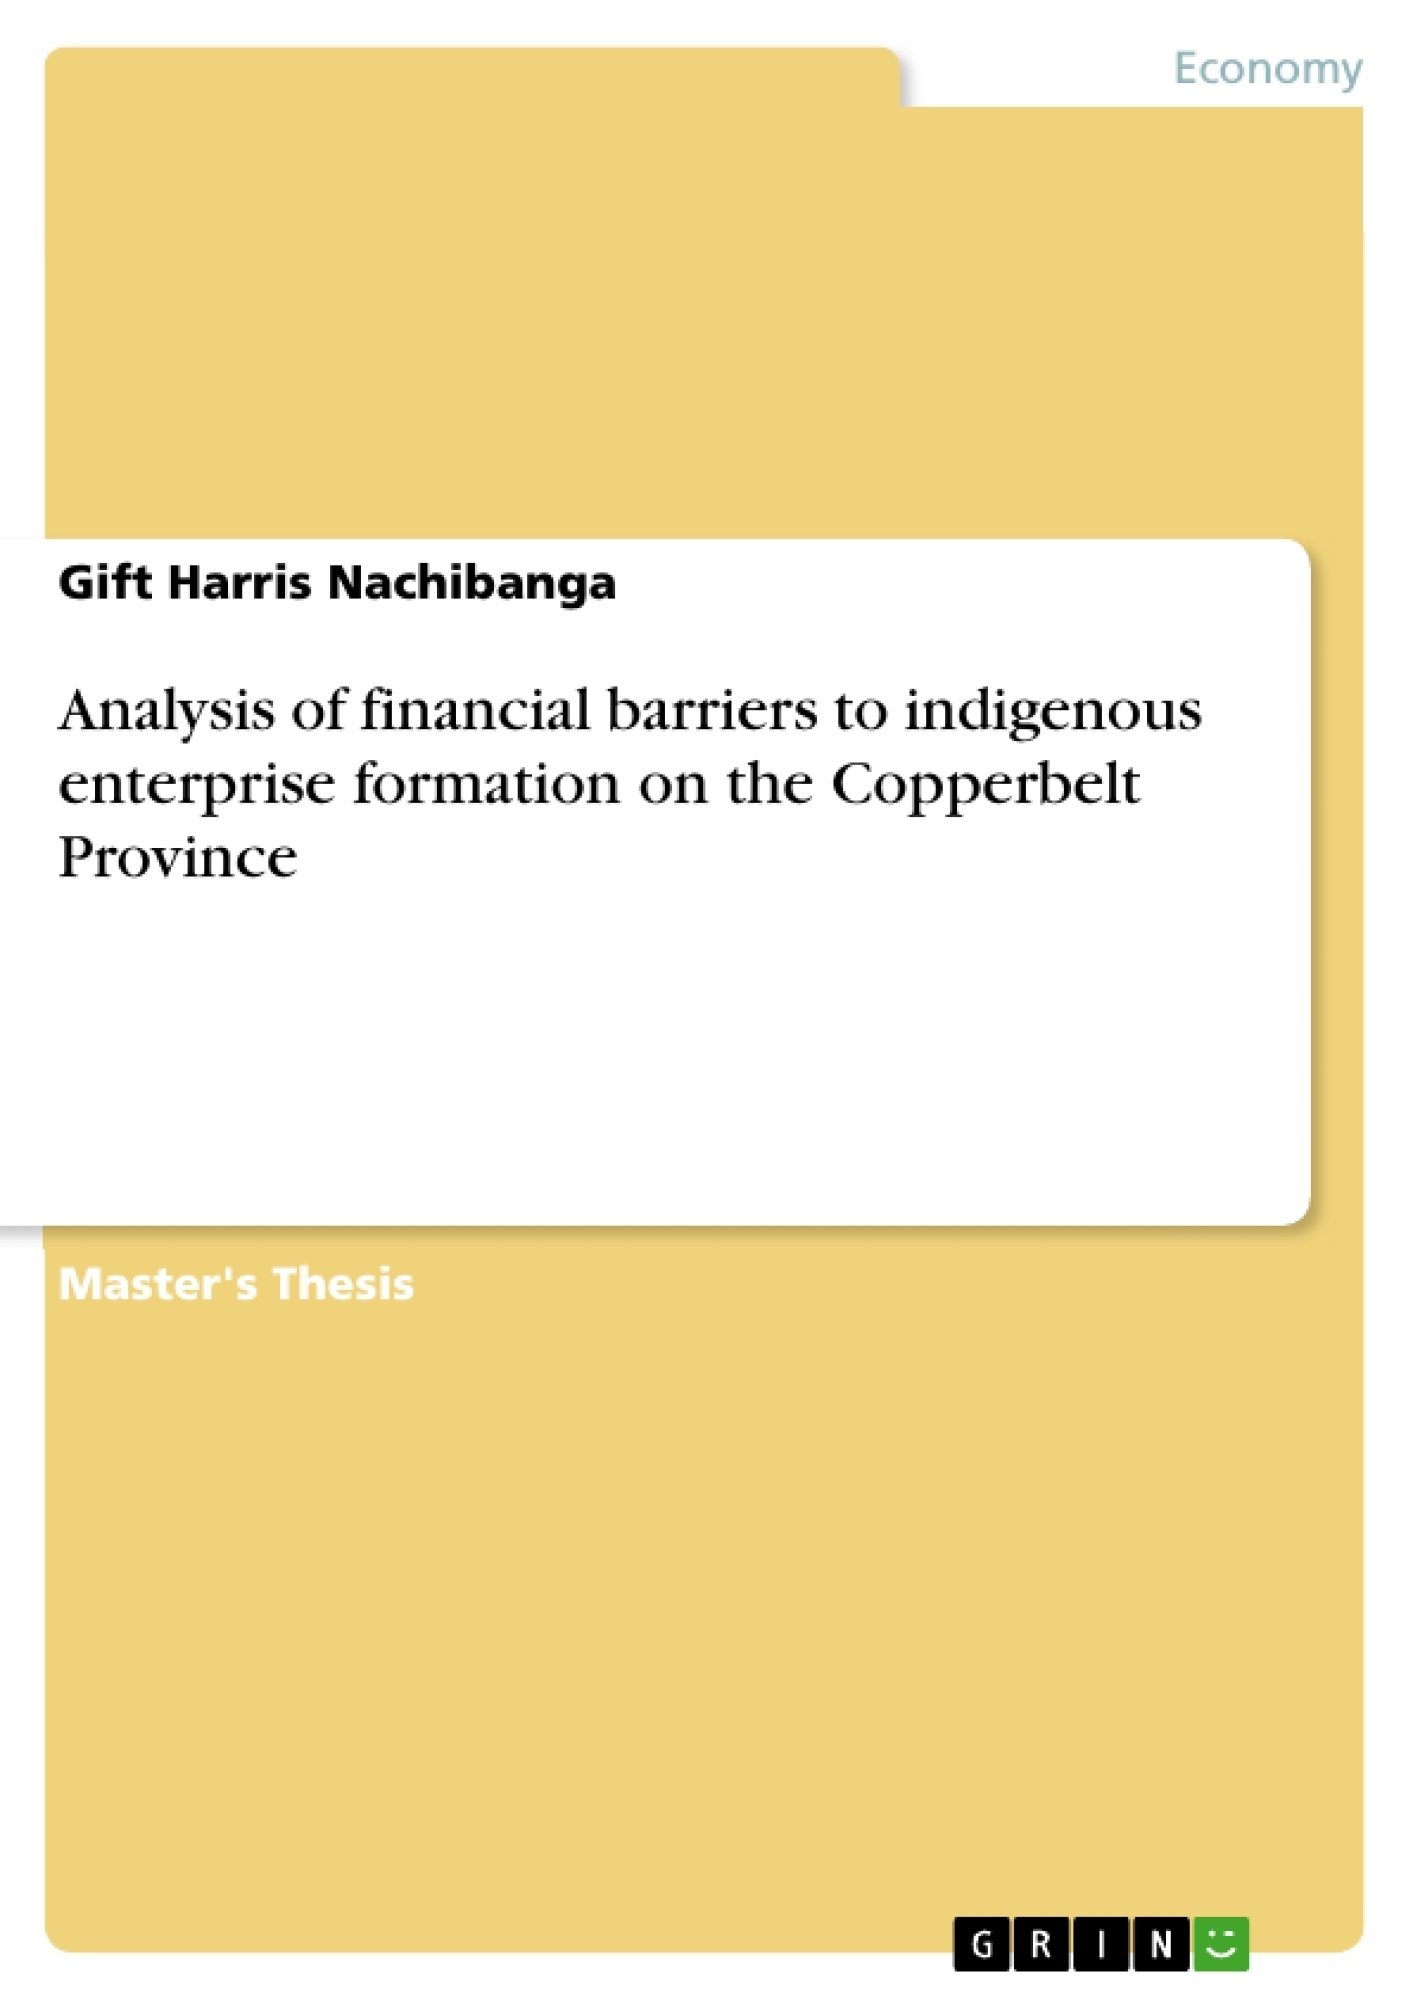 Title: Analysis of financial barriers to indigenous enterprise formation on the Copperbelt Province